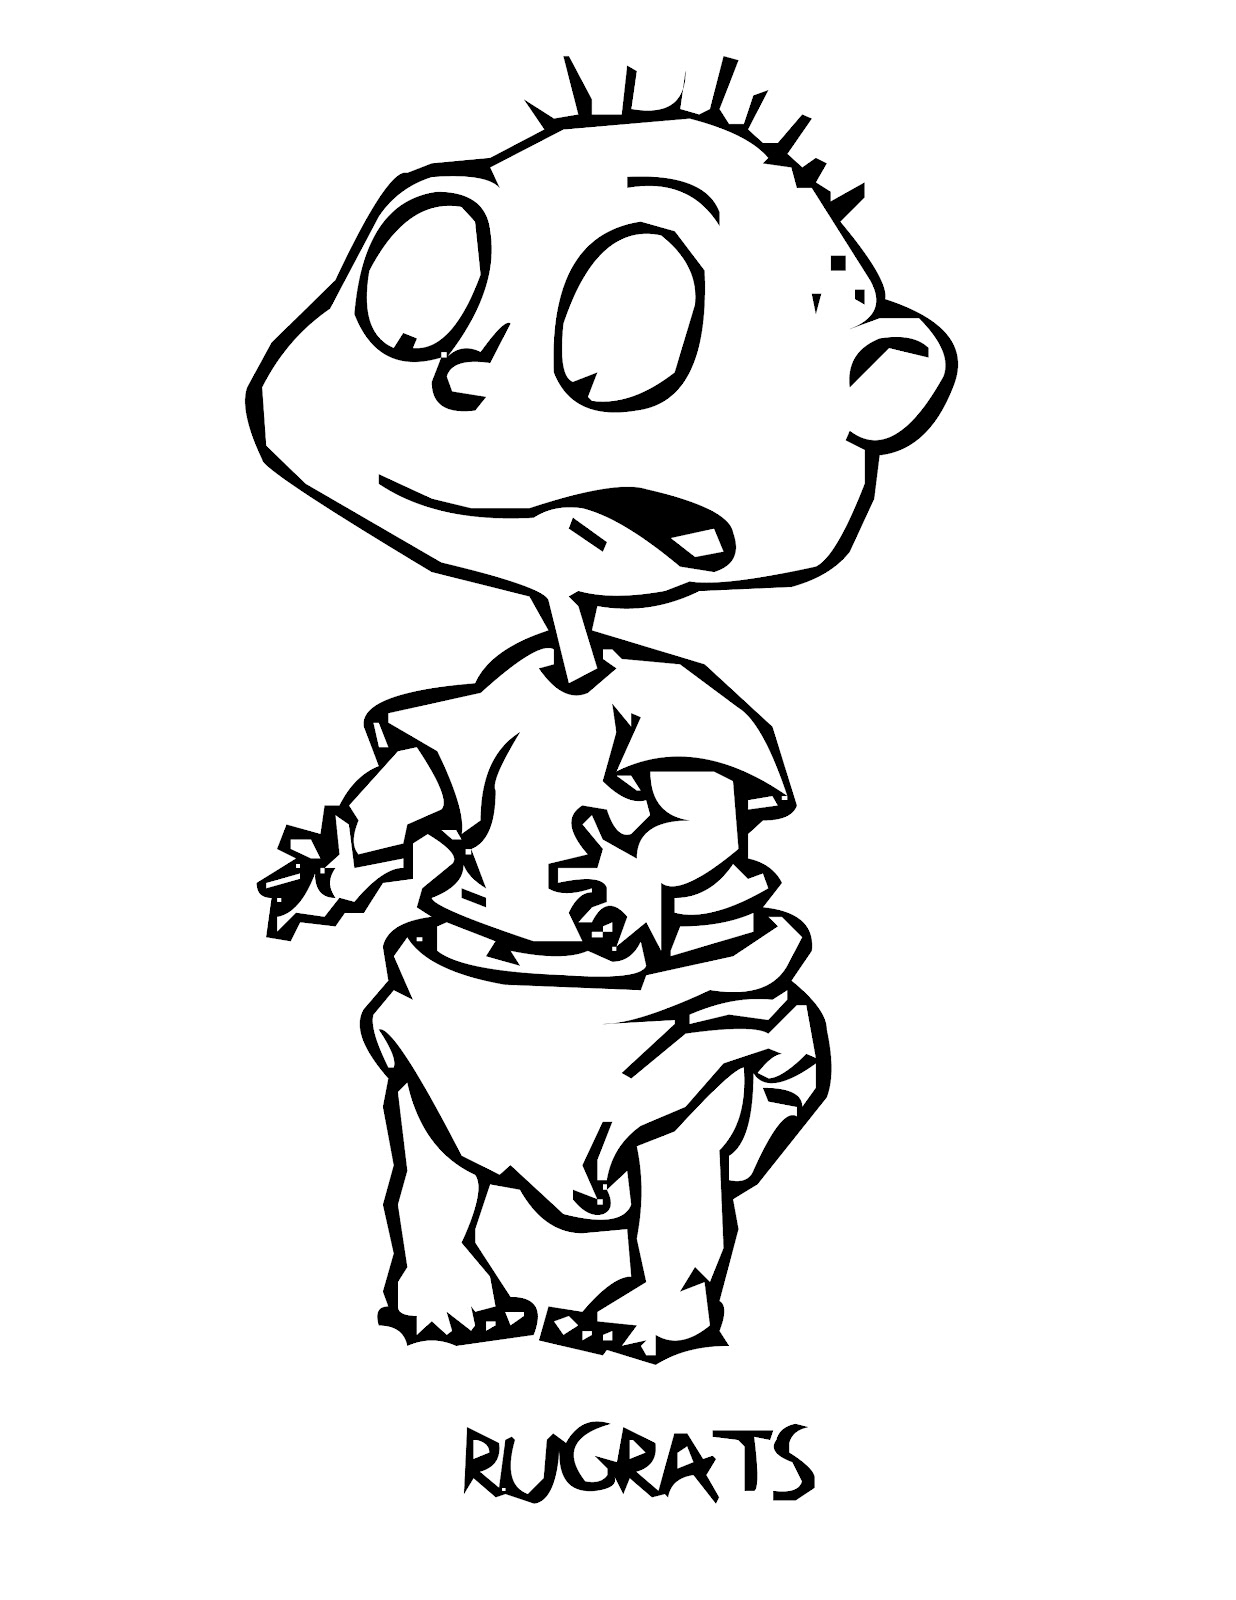 free printable rugrats coloring pages for kids - Rugrats Characters Coloring Pages